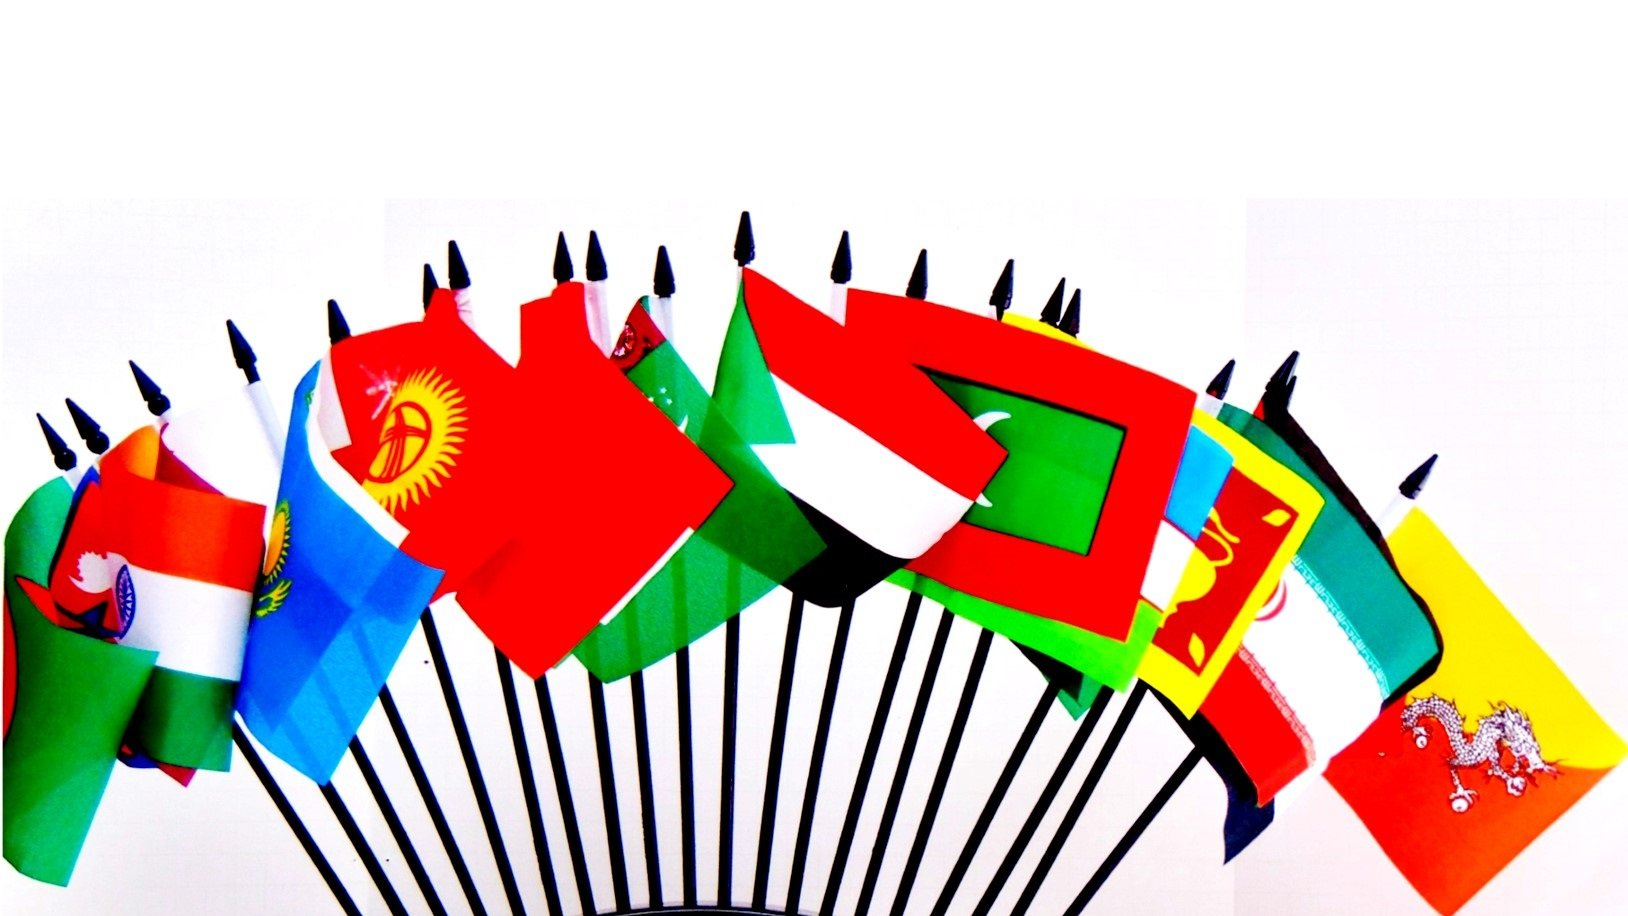 South Central Asia World Flag SET-20 Polyester 4''x6'' Flags, One Flag for Each Country in South Central Asia, 4x6 Miniature Desk & Table Flags, Small Mini Stick Flags